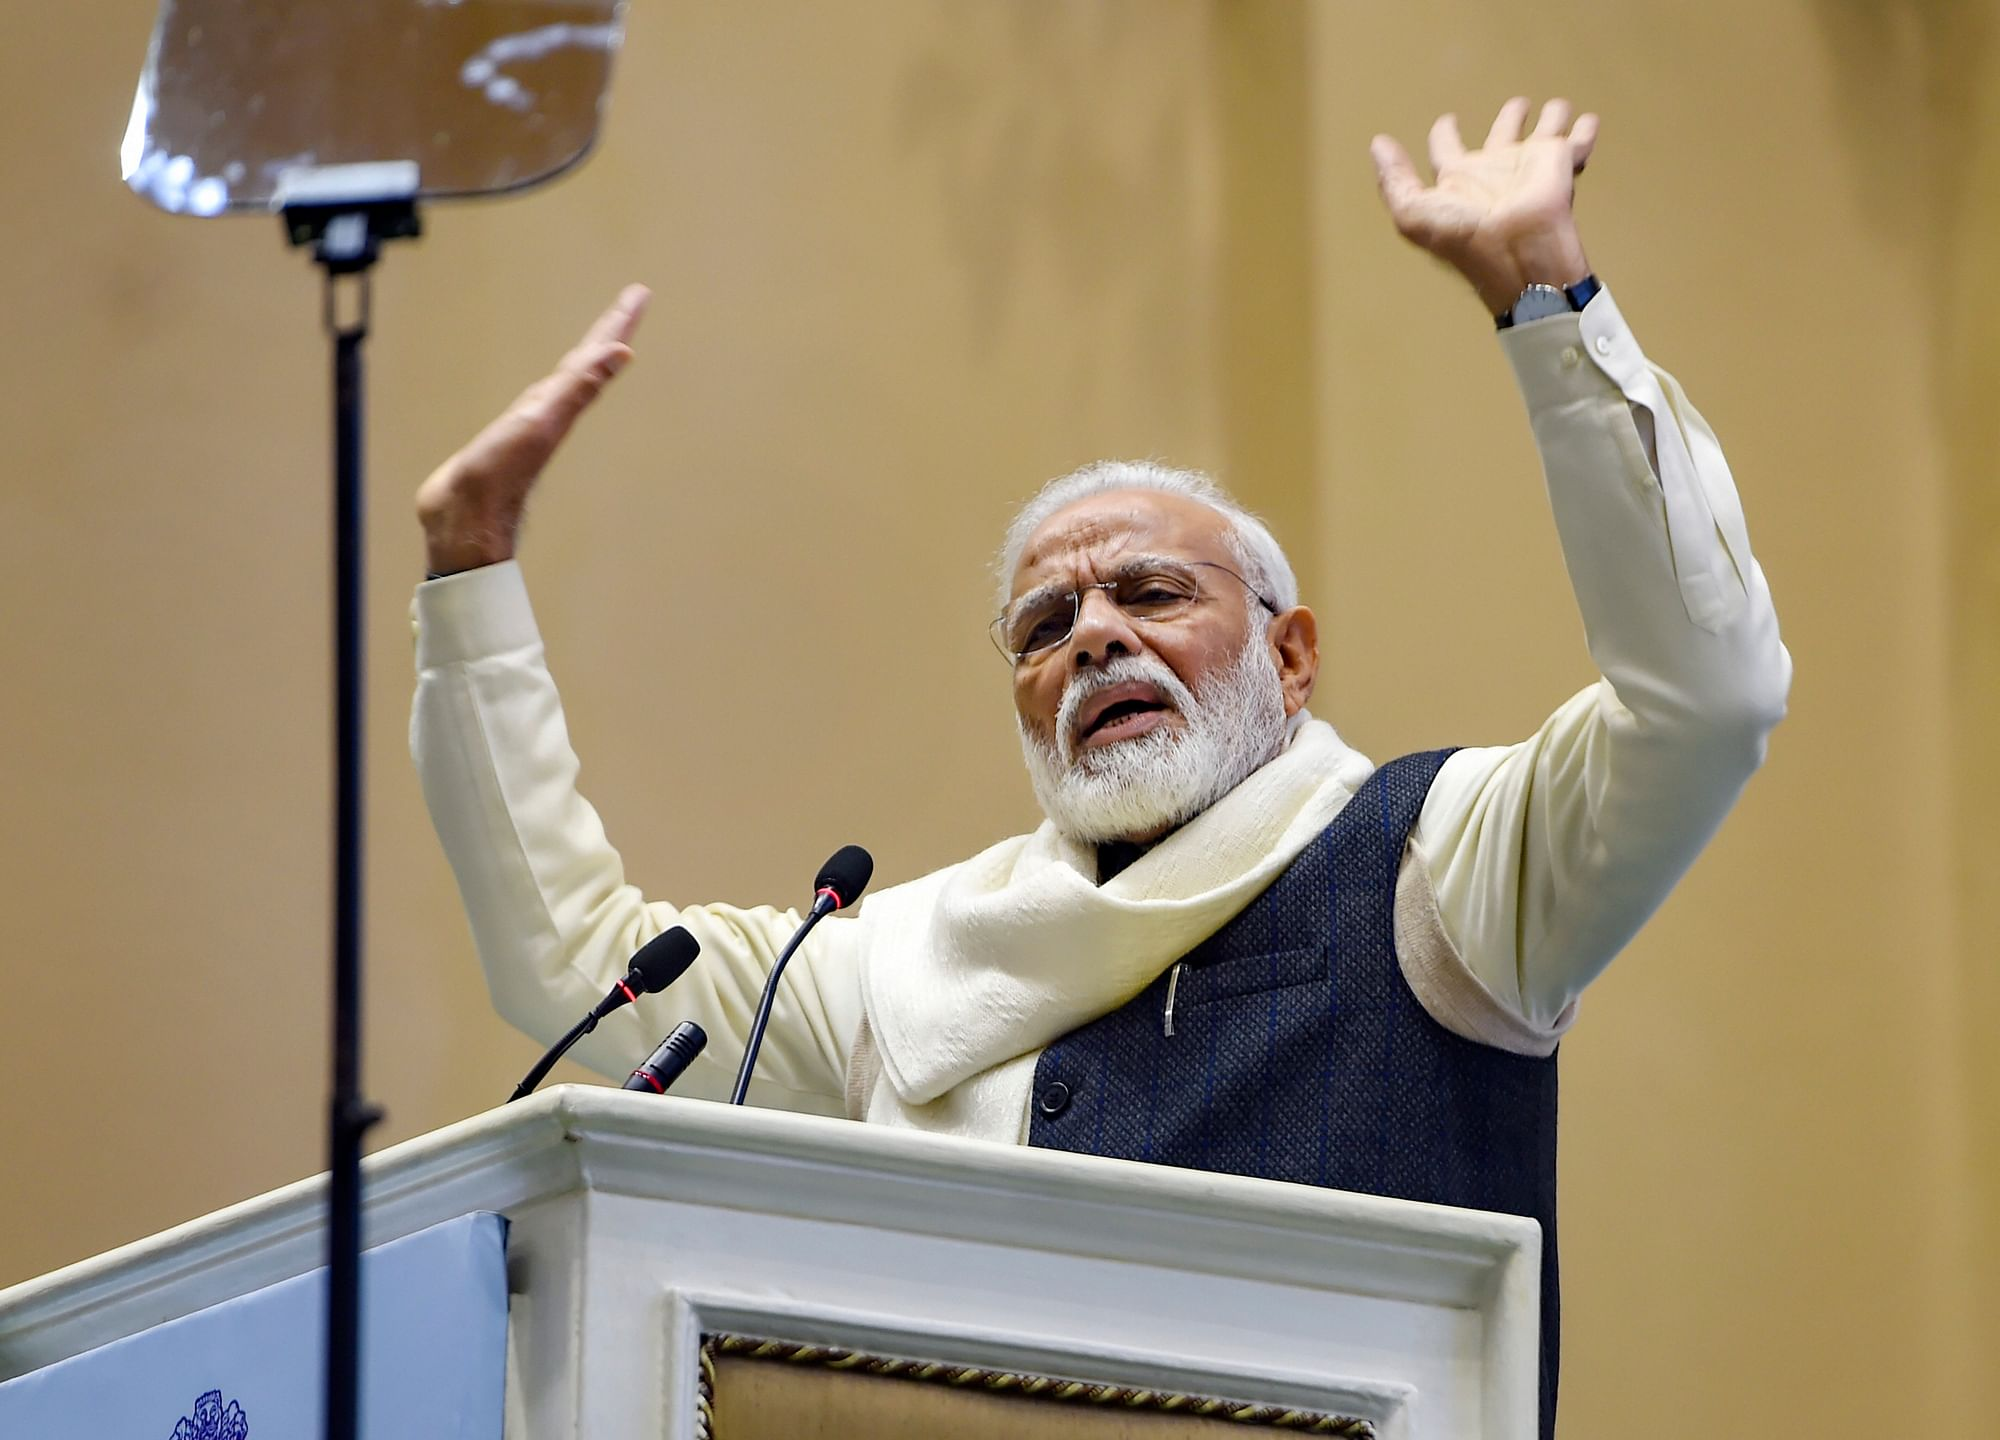 India Developing Rapidly, Only Vested Interests Causing Unrest, Says PM Modi